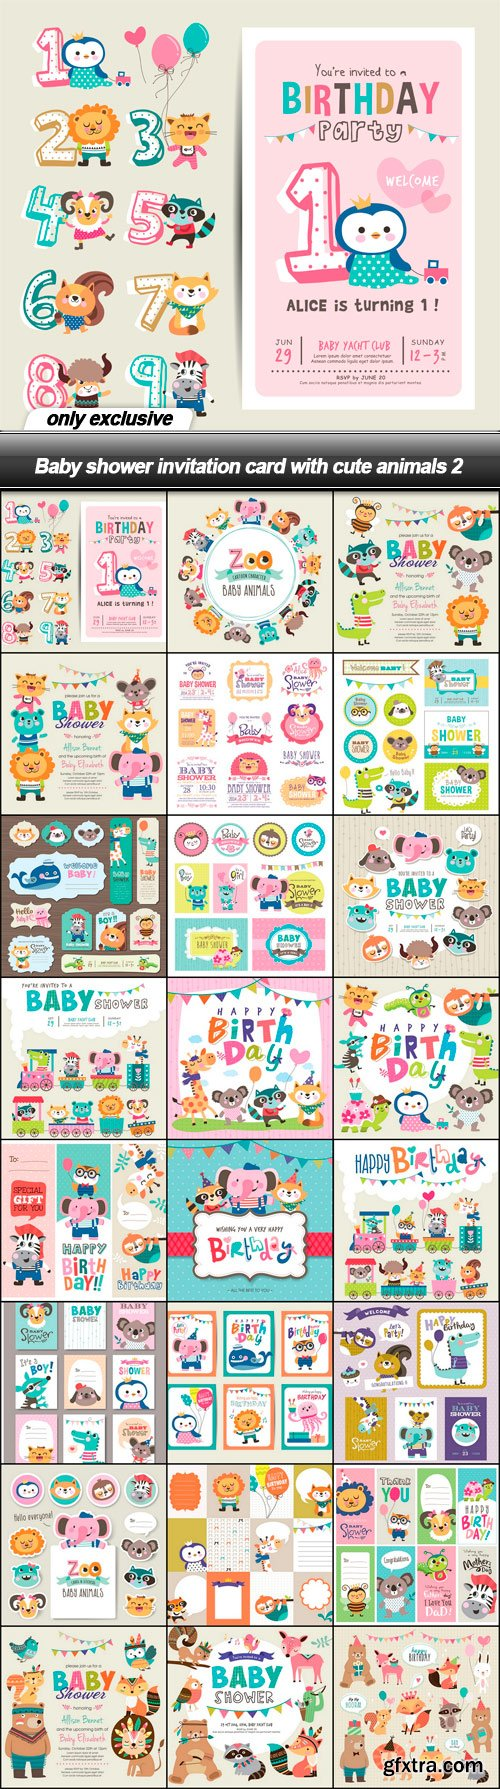 Baby shower invitation card with cute animals 2 - 24 EPS